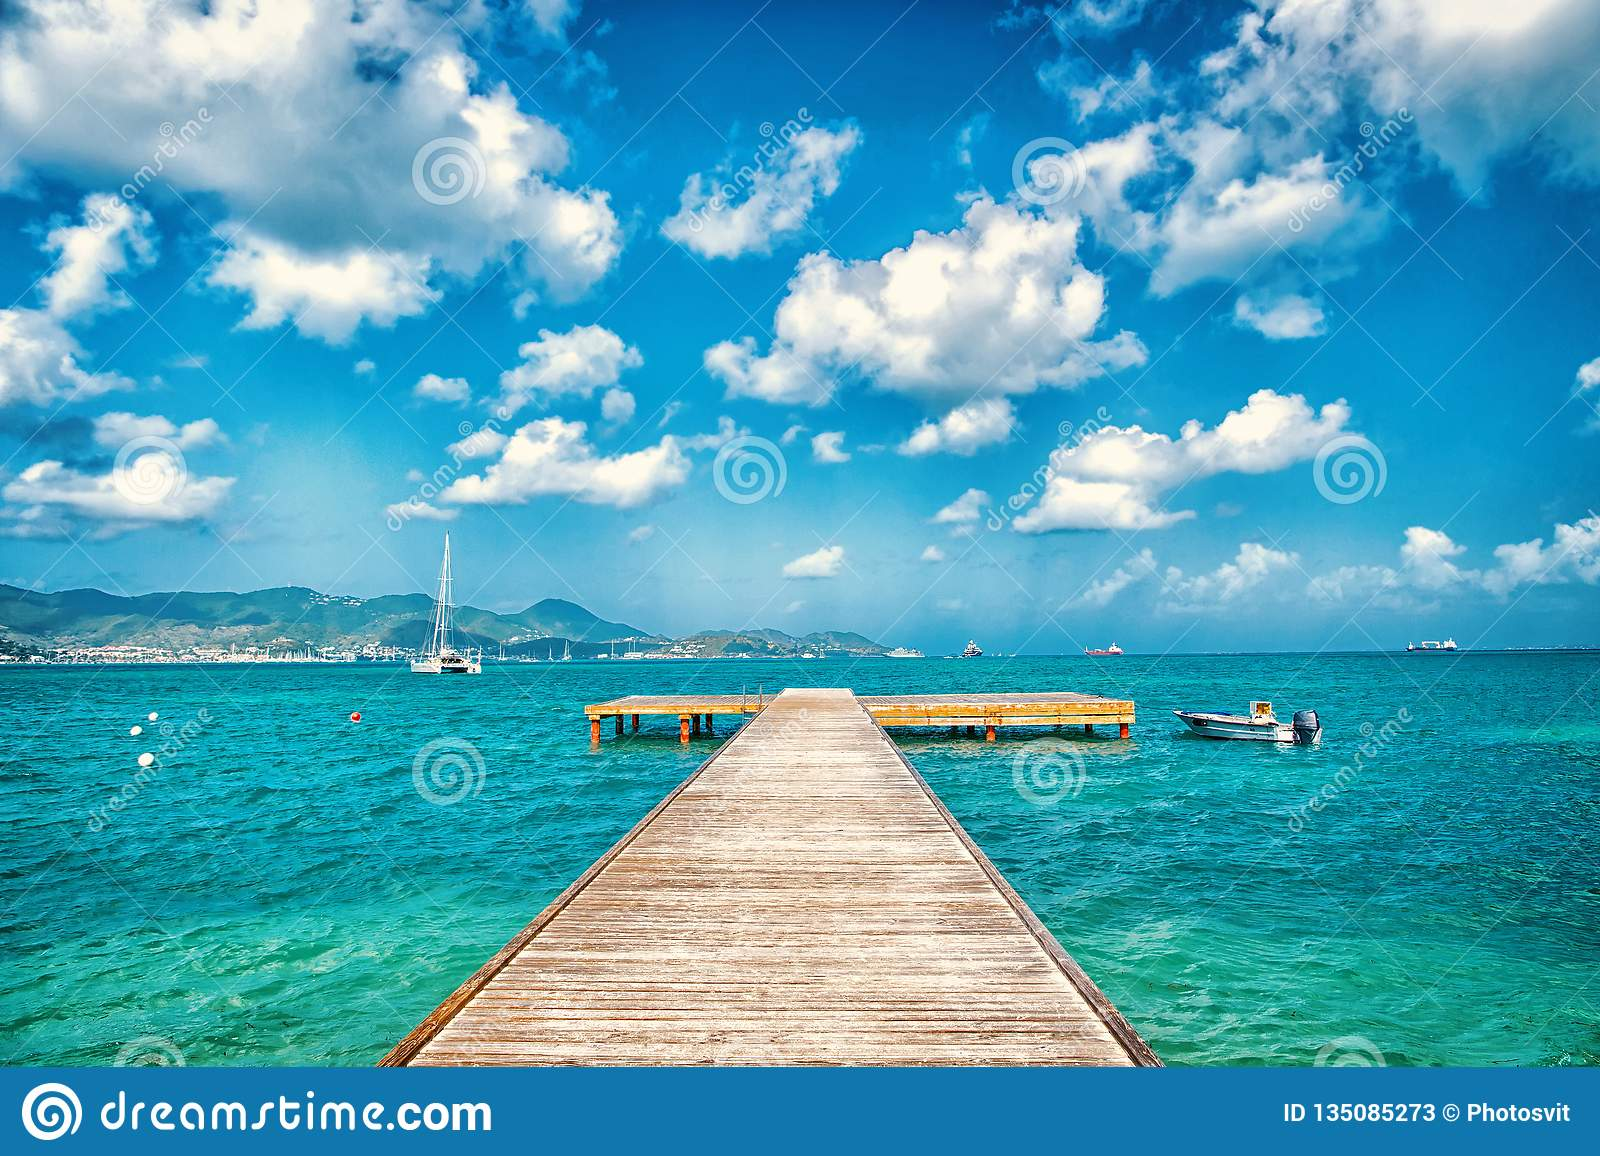 Pier in turquoise sea and blue sky with white clouds in philipsburg, sint maarten. Freedom, perspective and future